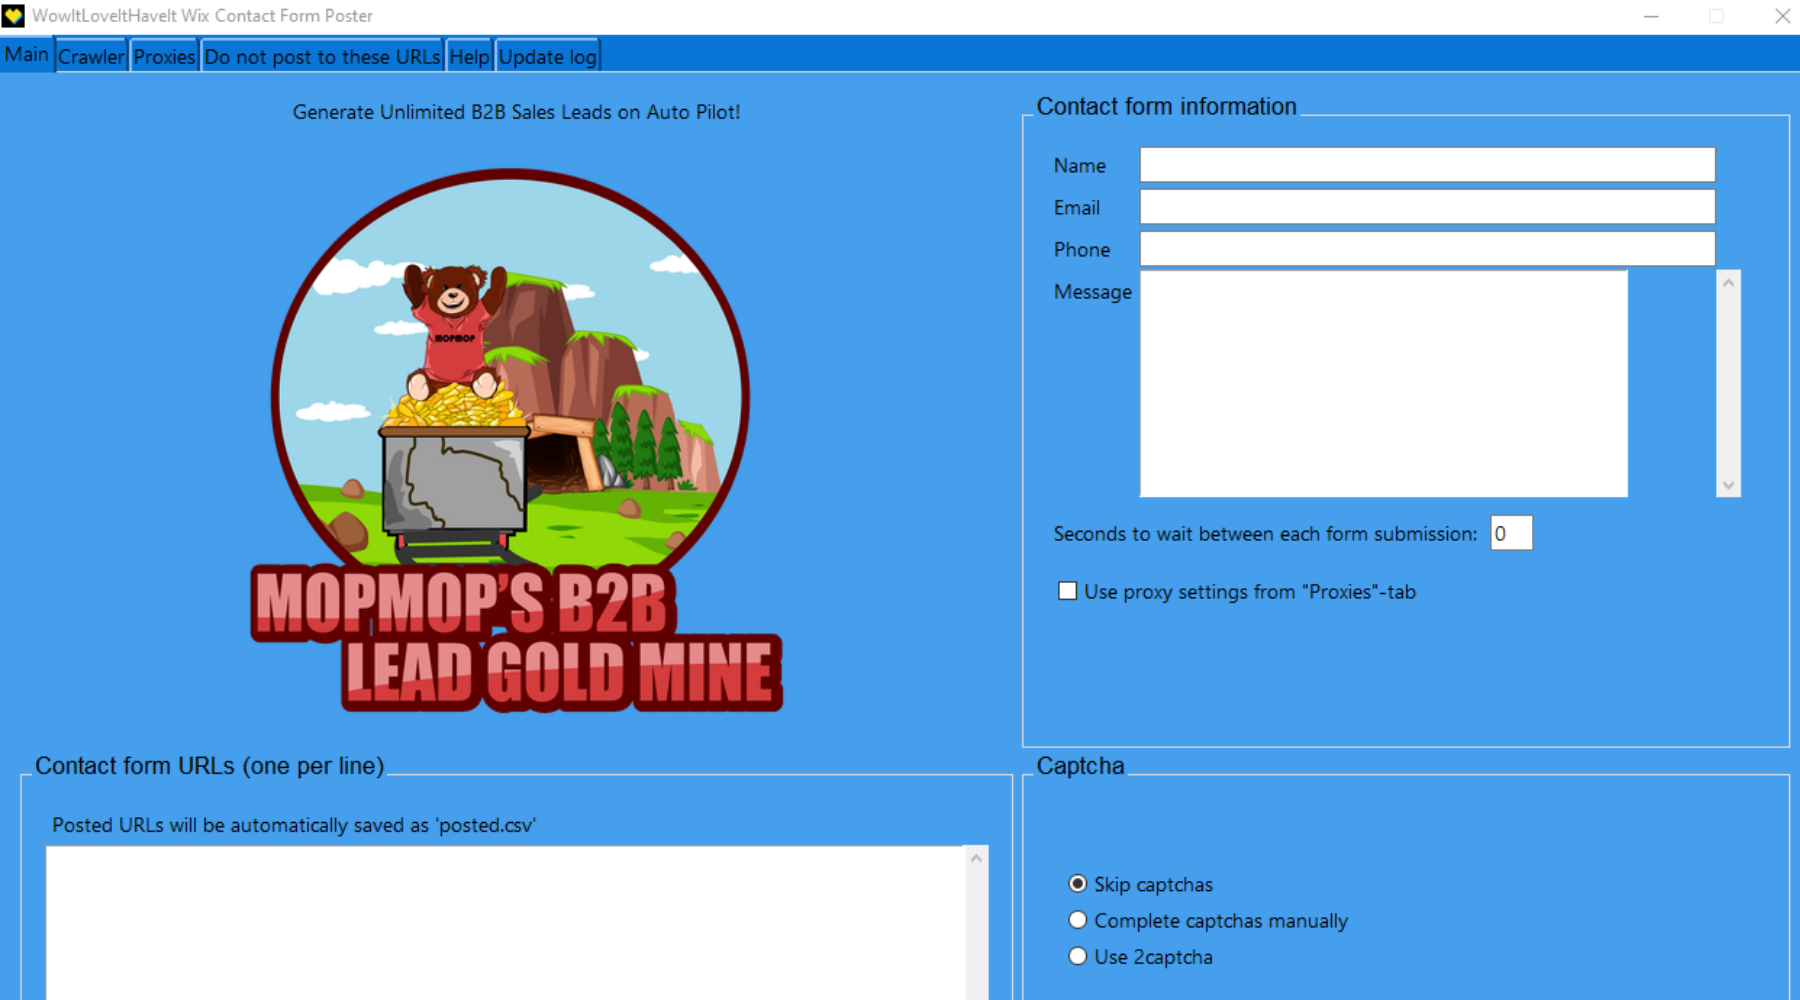 Wix Contact Form Submitter - Mop Mop's B2B Lead Gold Mine